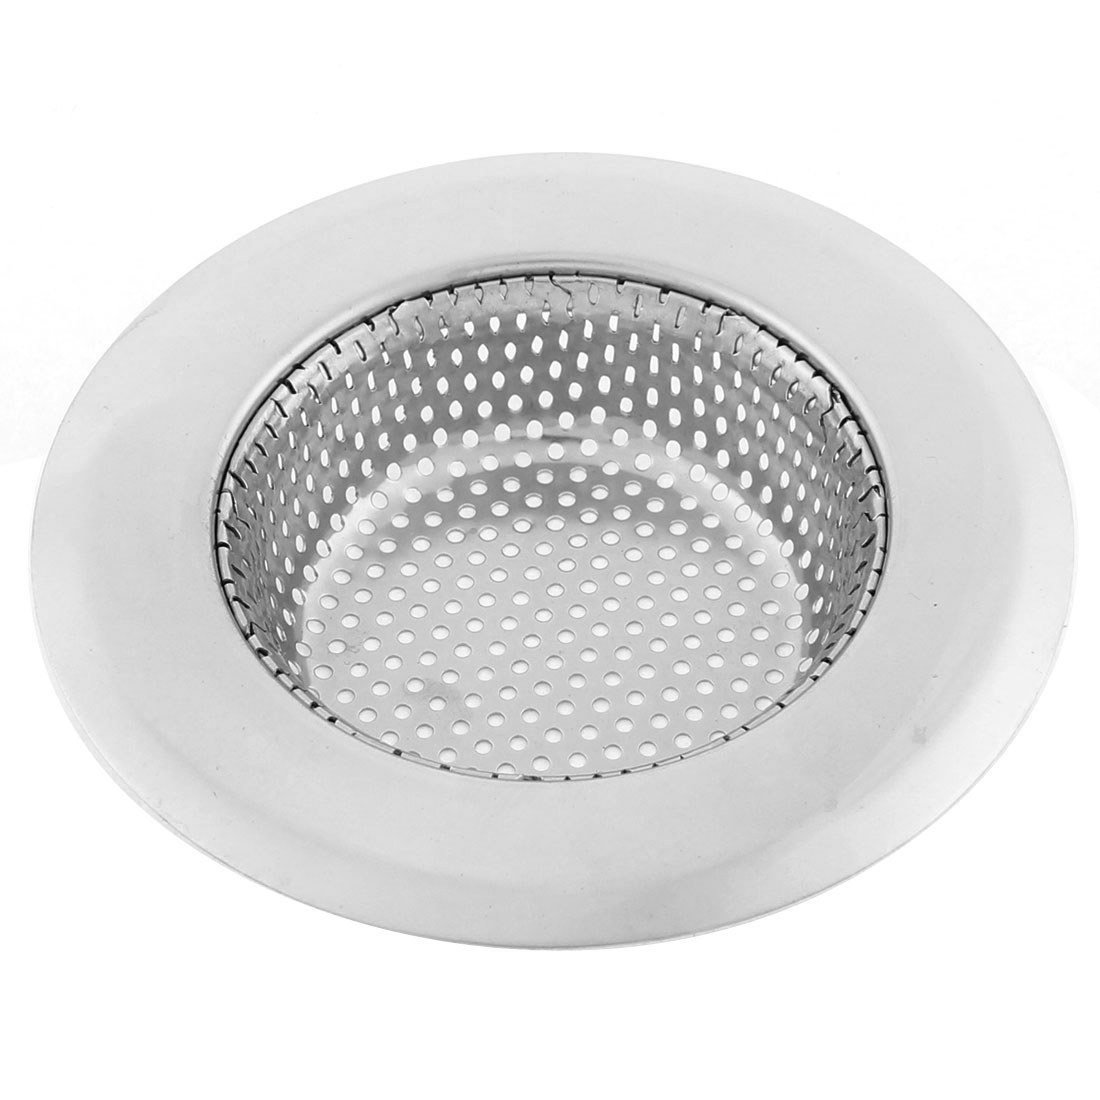 Kitchen Floor Basin Sink Stainless Steel Mesh Filter Strainer 11.3cm Outer Dia